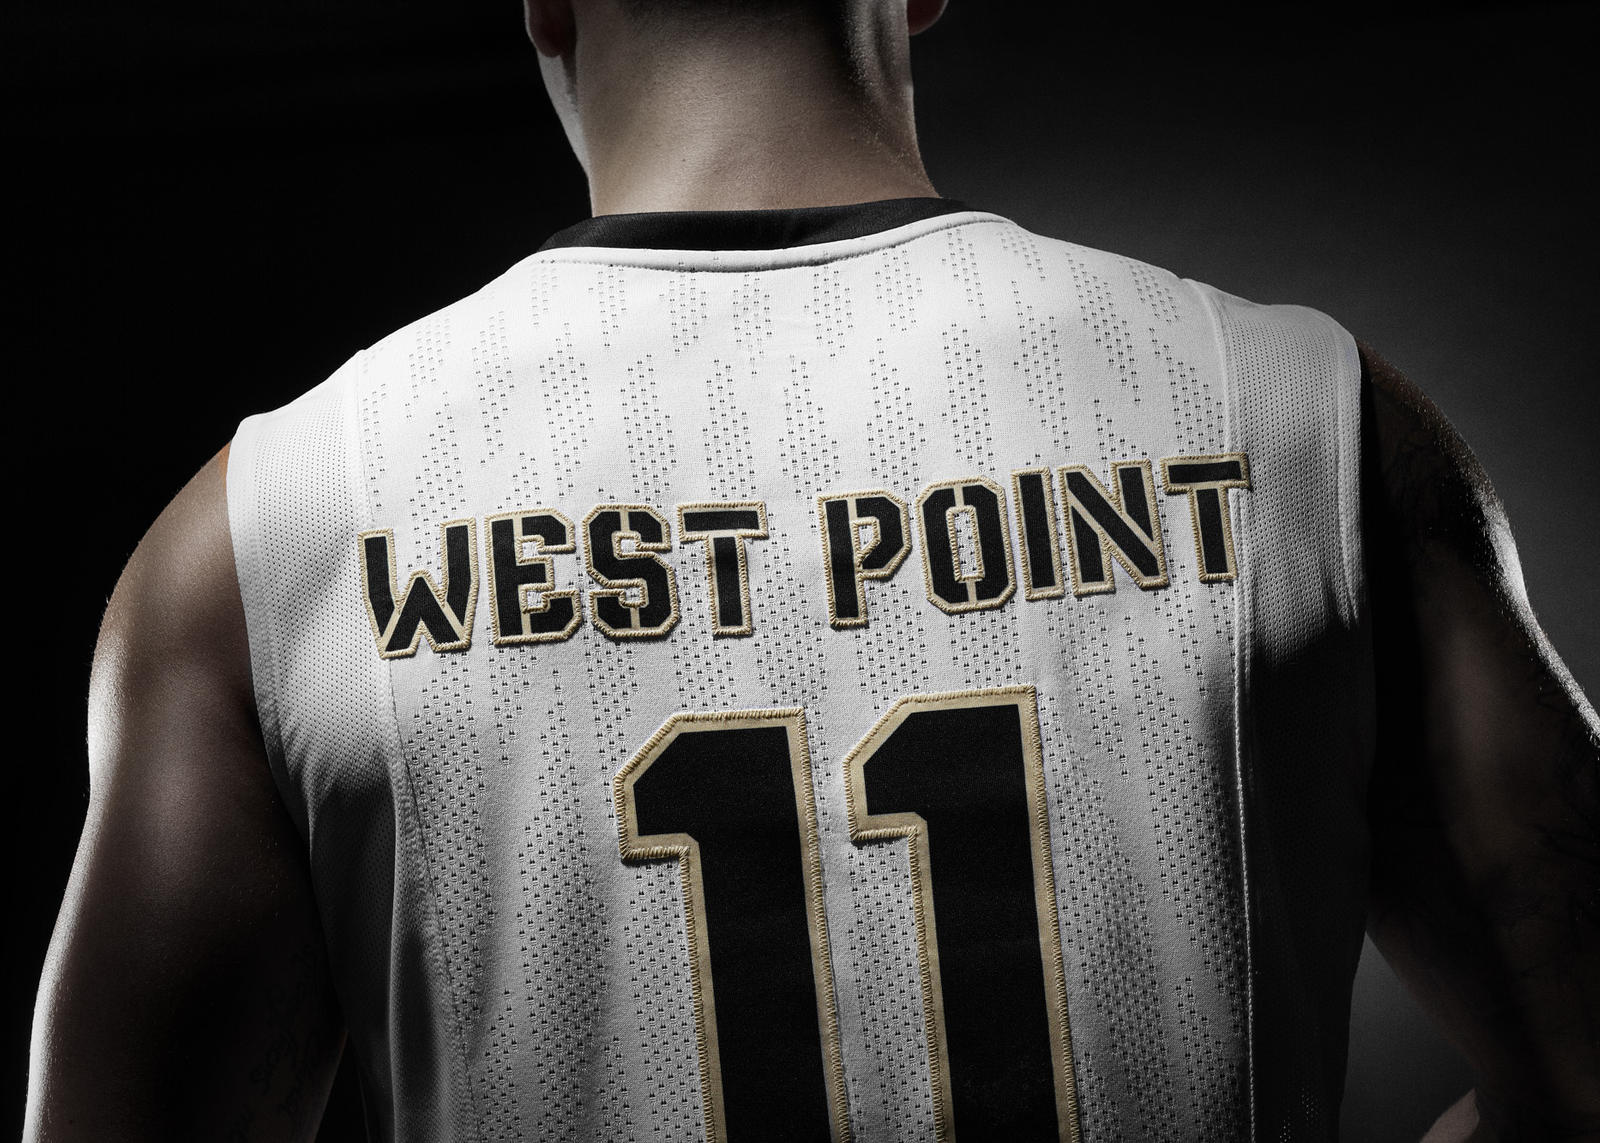 Army West Point Evolves Its Brand Across All Athletics - Nike News 72dbd736f5f8